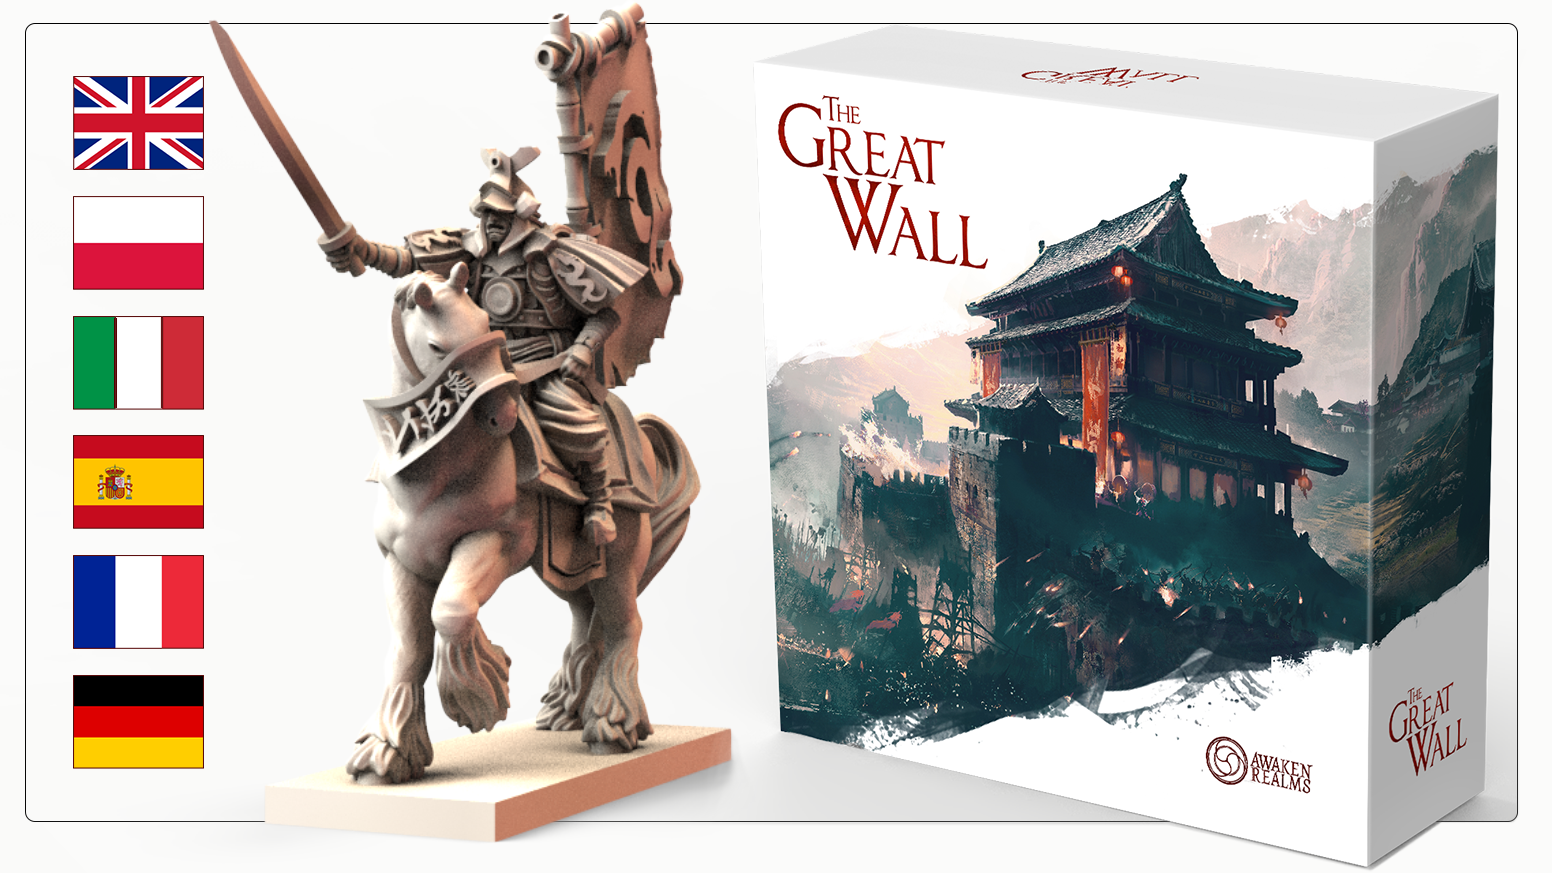 New major Board Game from Awaken Realms set in ancient China. Build and defend the Great Wall in unique worker placement / euro game!